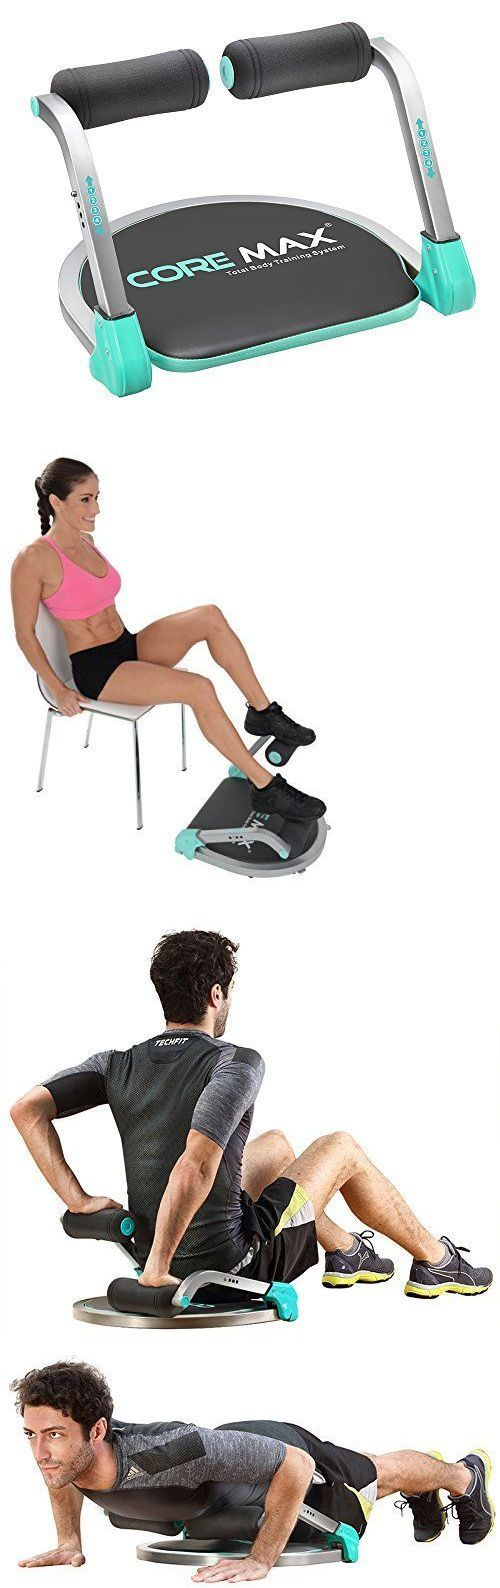 Abdominal Exercisers 15274: Core Max Abs Machine Abdominal Trainer, New -> BUY IT NOW ONLY: $69.19 on eBay!